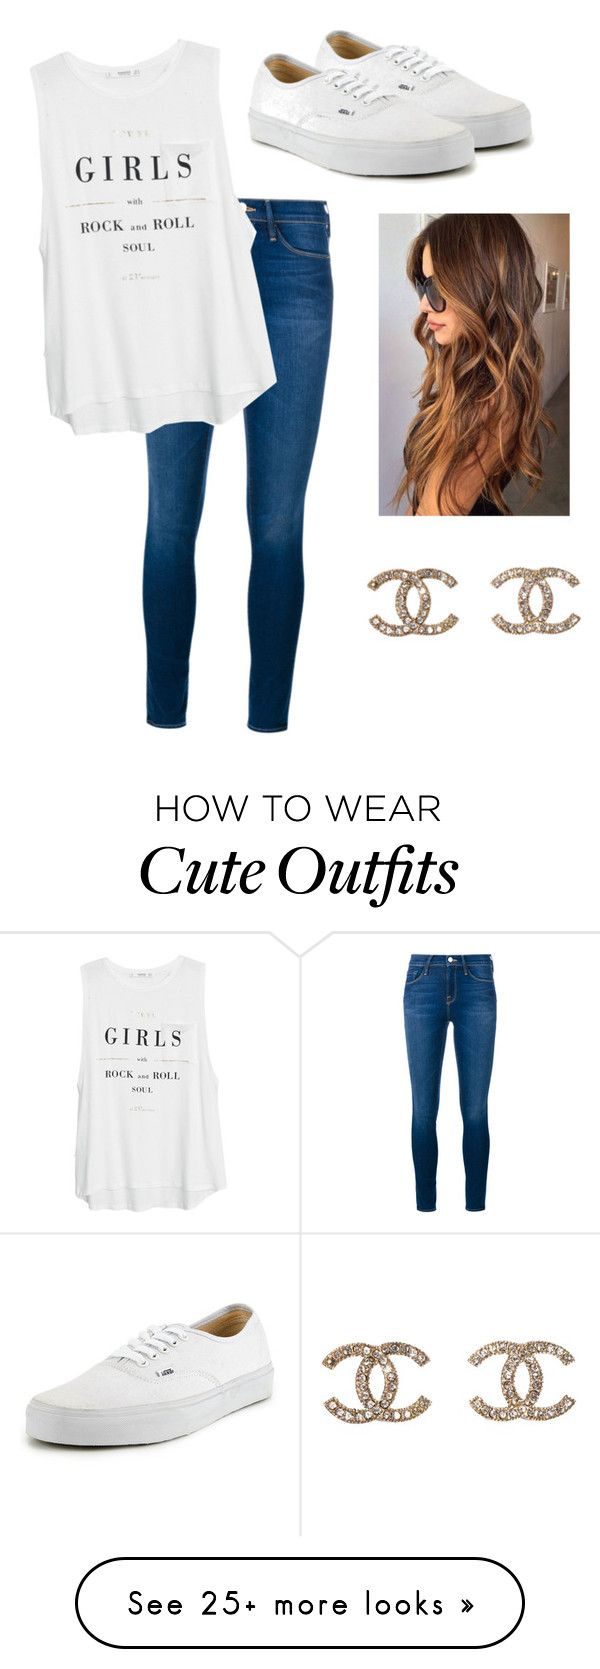 """Cute School Outfit"" by faith-shelton7879 on Polyvore featuring Frame Denim, MANGO, Vans, Chanel, women's clothing, women's fashion, women, female, woman and misses"